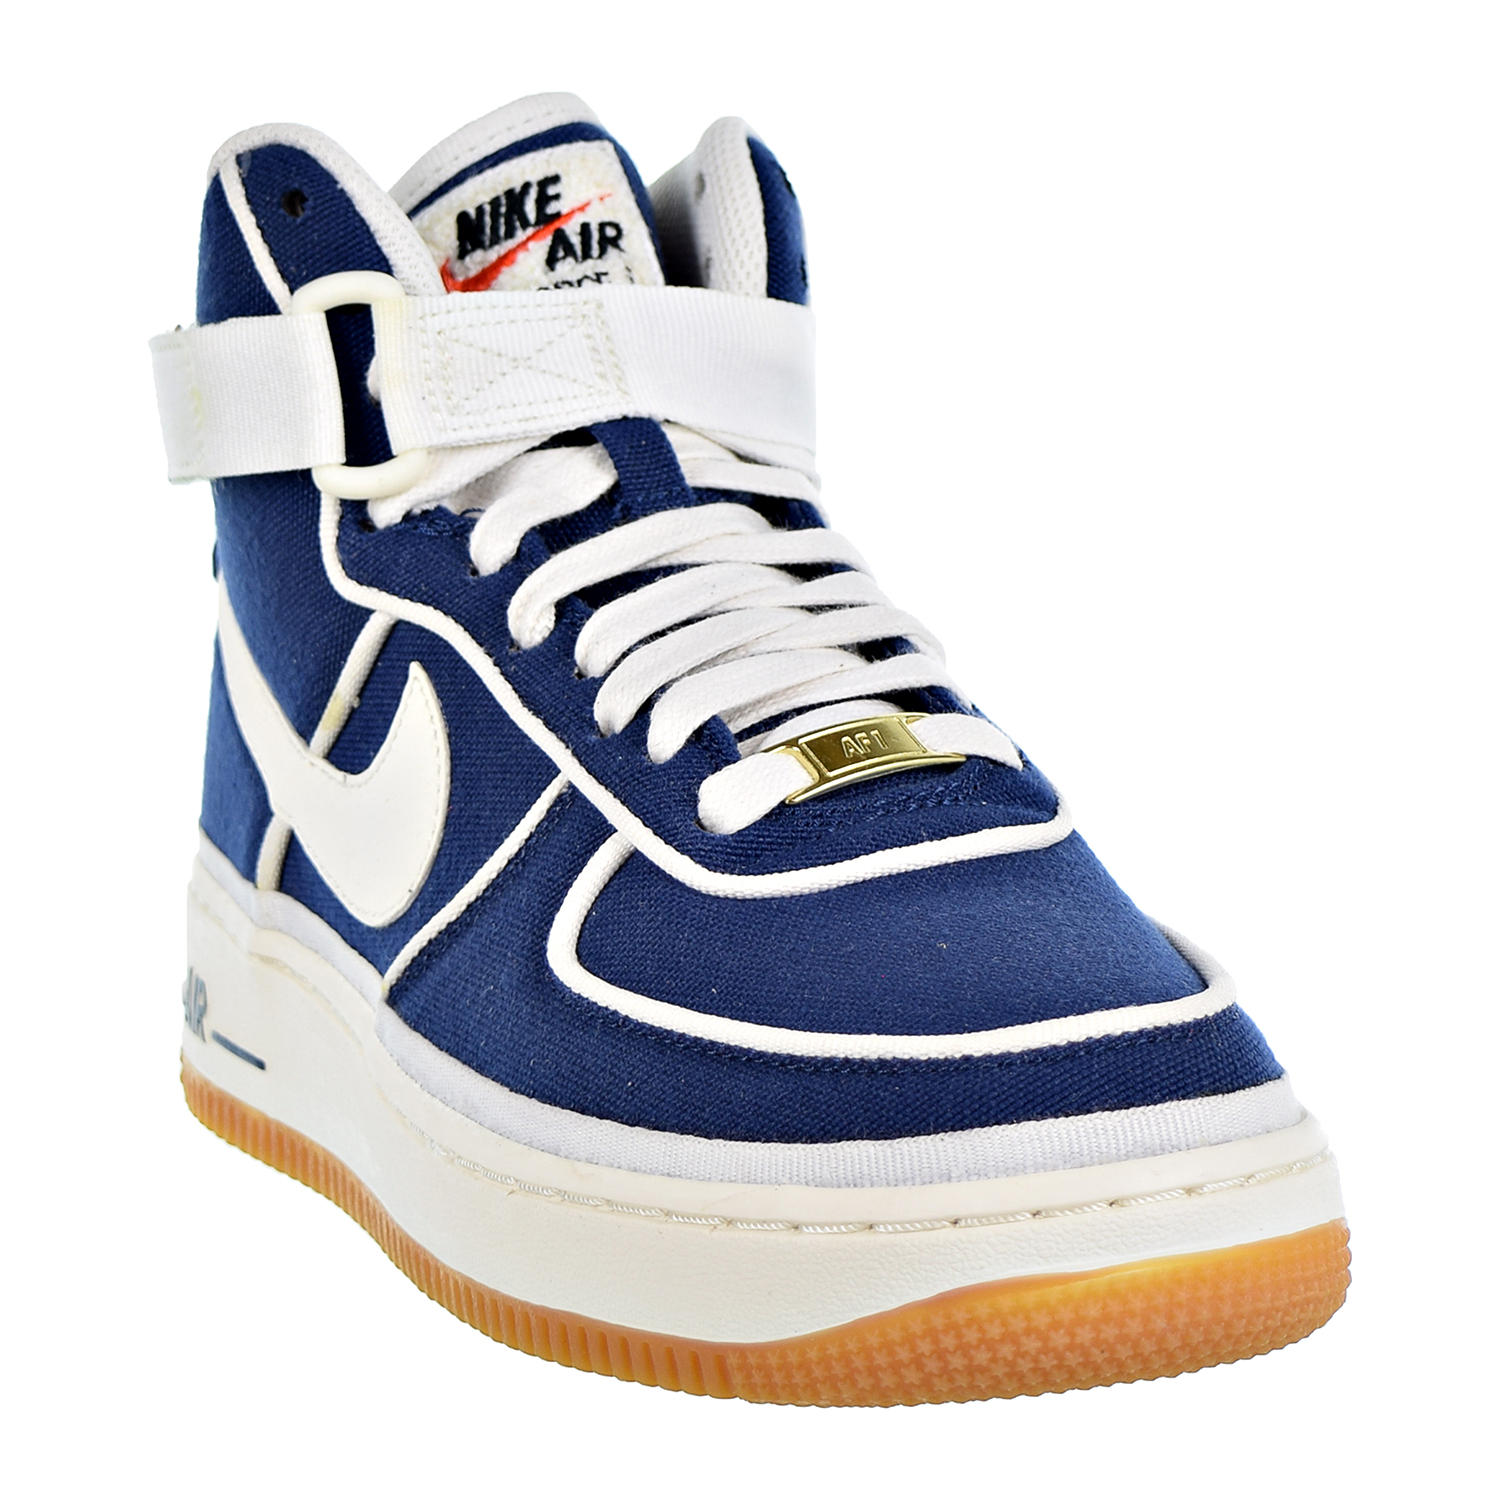 Details about Nike Air Force 1 High LV8 Big Kids' Shoes Binary Blue Sail Black 807617 400